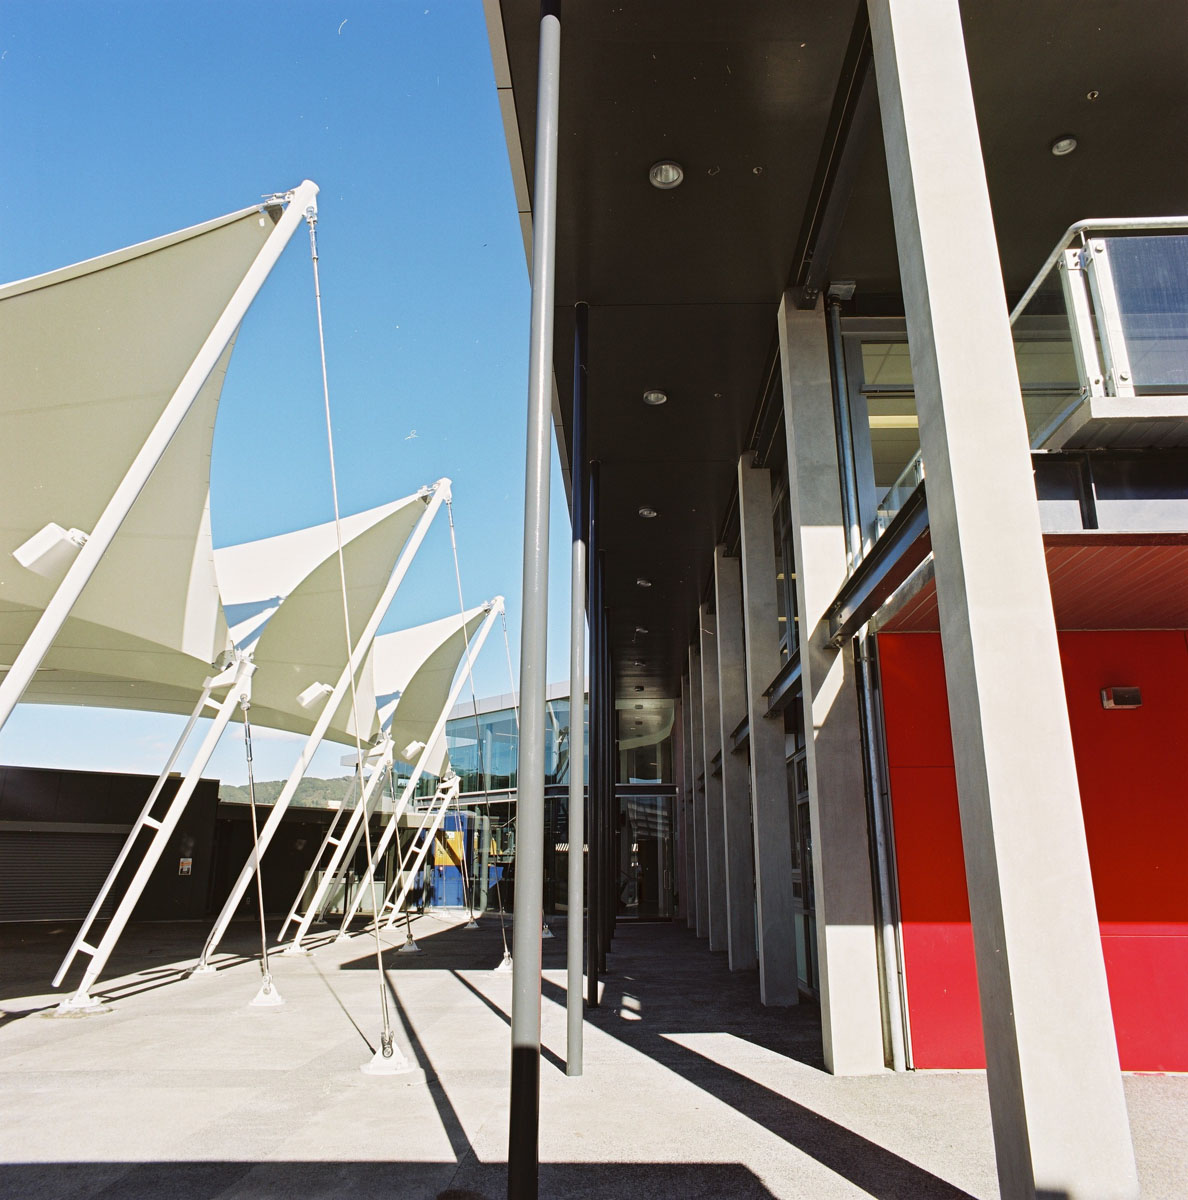 """Located at the front entry heart of the campus, the design draws reference to the traditional school """"cloistered edge"""" yet in a modern vernacular.  A simple smooth steel skin plate punctuated centrally at the entry by a recessed curtain wall greets first time visitors. On the opposite side, a transparent edge engages the sheltered plaza. A double height transparent atrium linked at the upper level by a floating bridge structure, internally separates building structure and function.  A sheltered multi purpose gathering space for students was an essential requirement of the brief. A Plaza was created and flanks the new Administration Building. A tensioned membrane canopy structure covers some 1,000sqm to create an indoor/outdoor space providing shelter from all weather conditions."""